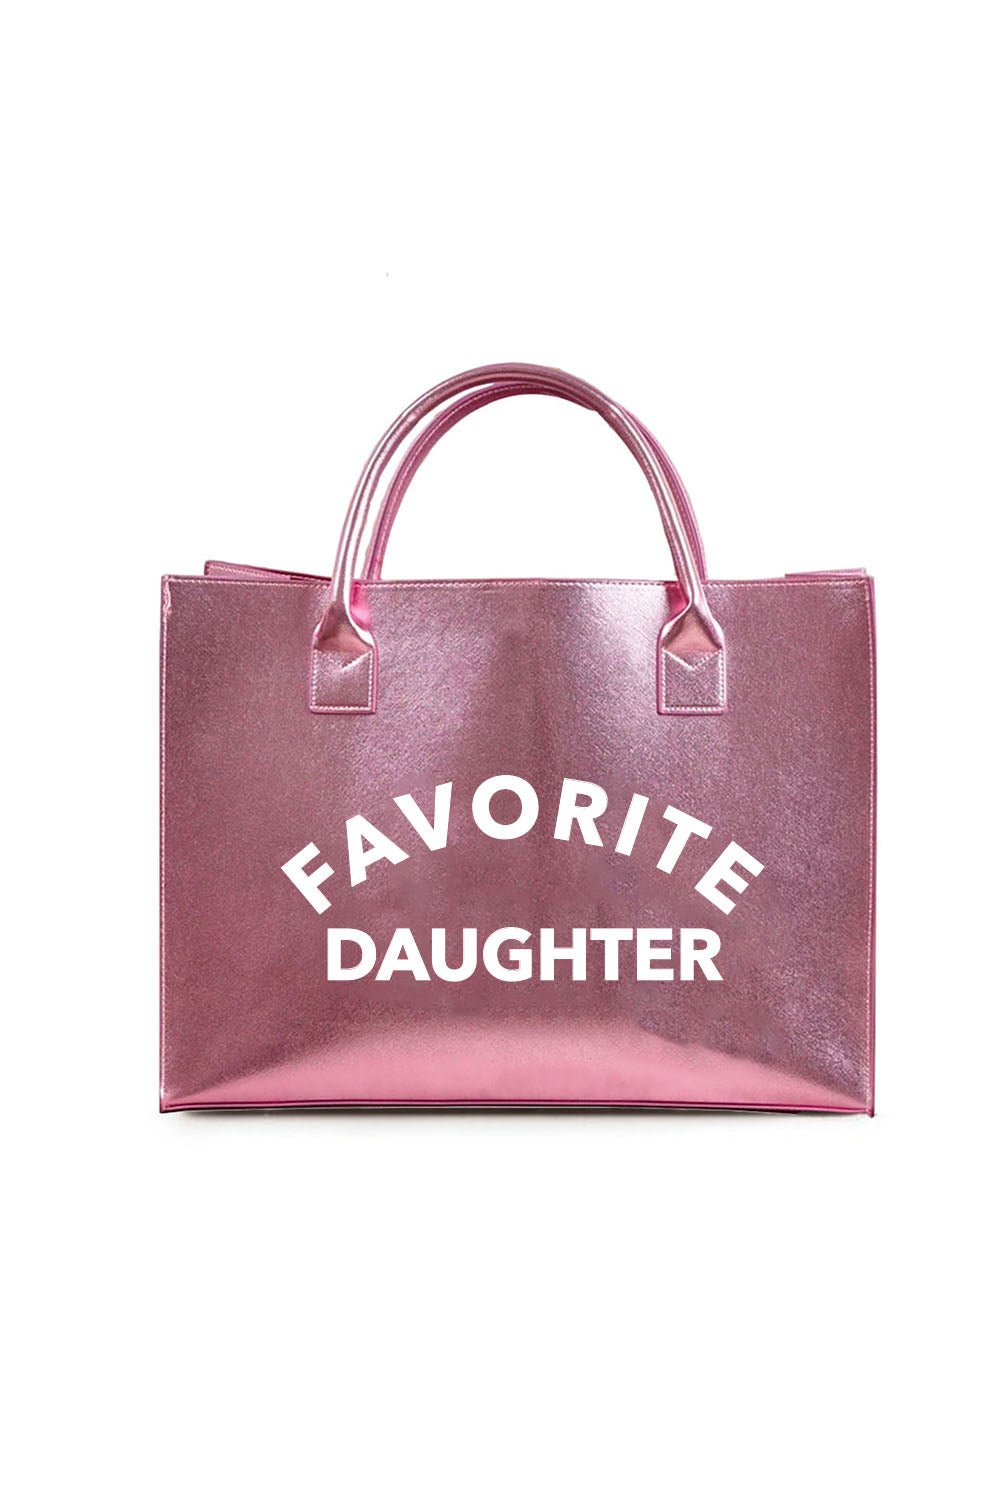 MODERN VEGAN TOTE - Favorite Daughter